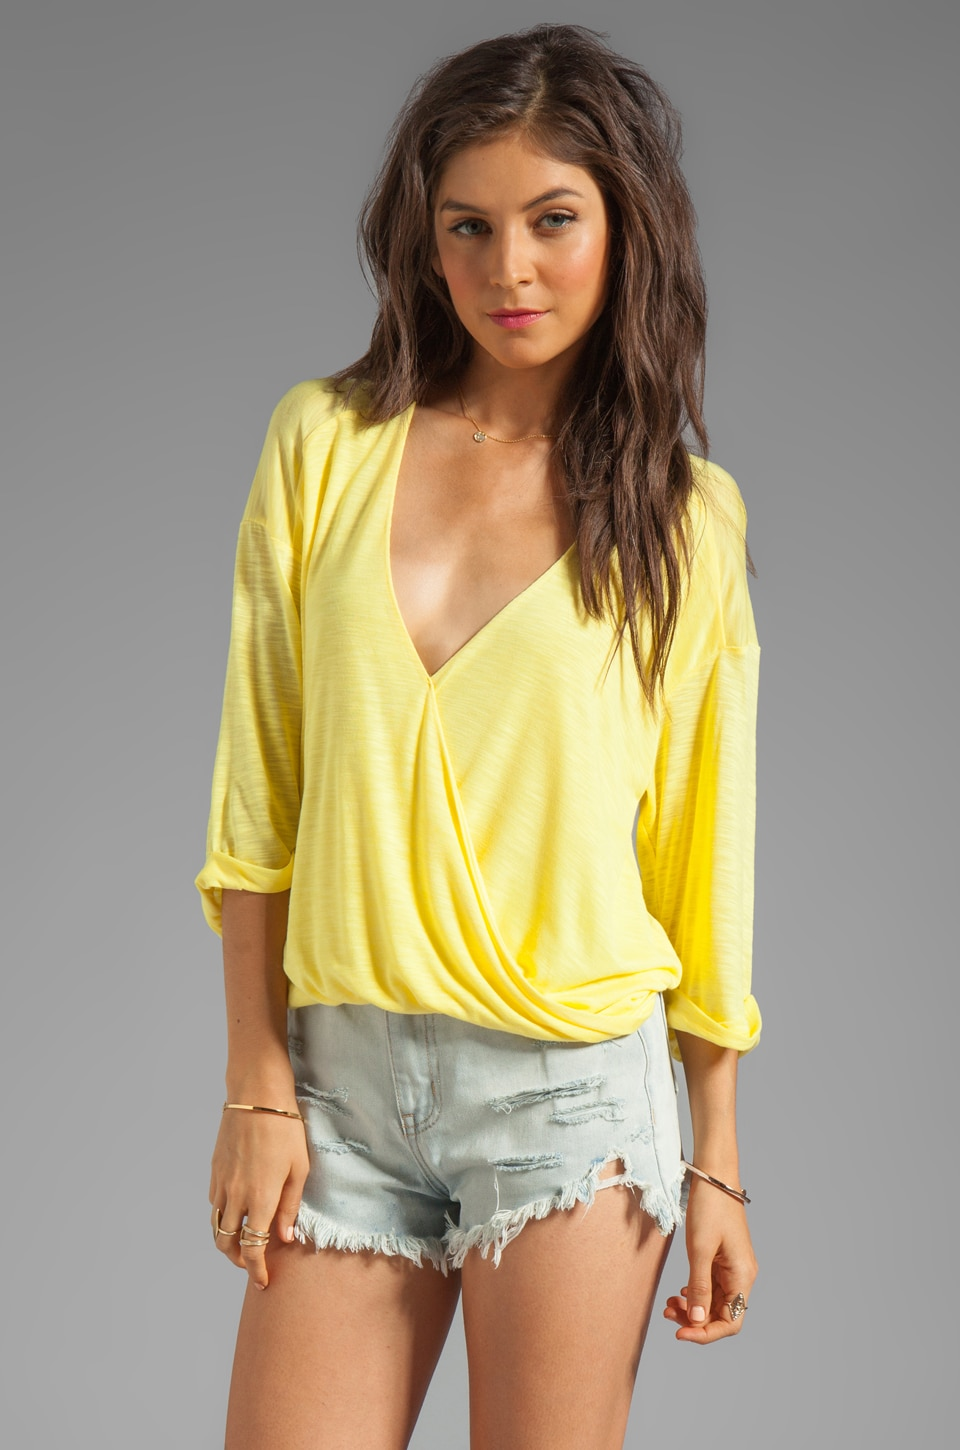 Blue Life 3/4 Sleeve Hayley Top in Sunbeam